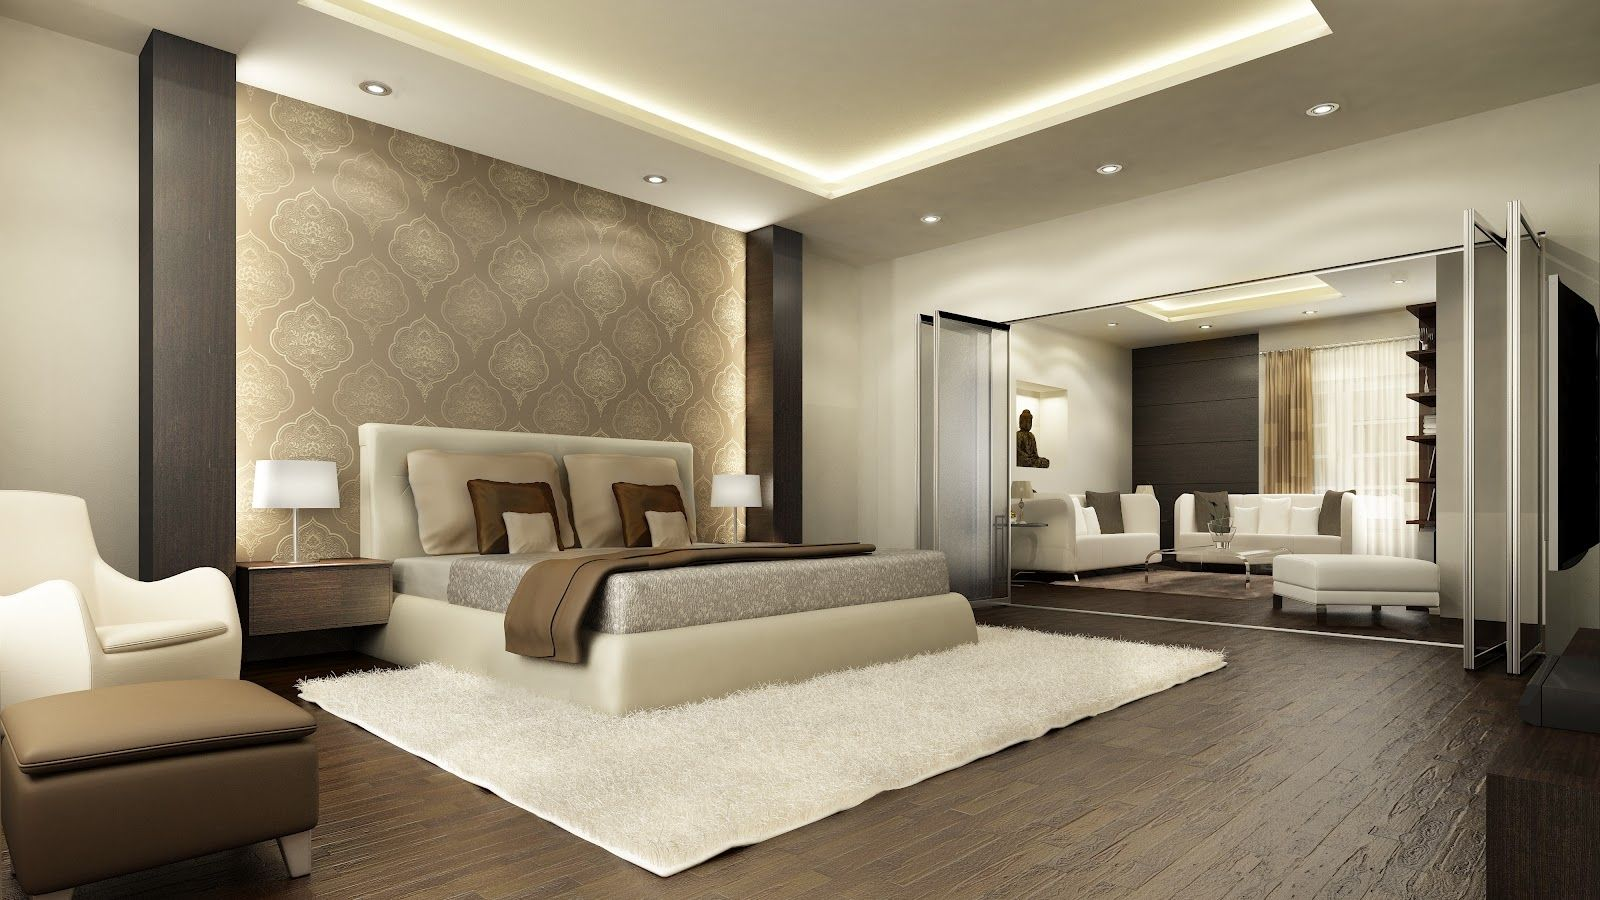 Interior Design For Bedrooms Inexpensive 1000 Images About New Classic Master Bedroo Modern Master Bedroom Design Luxury Bedroom Master Master Bedroom Interior